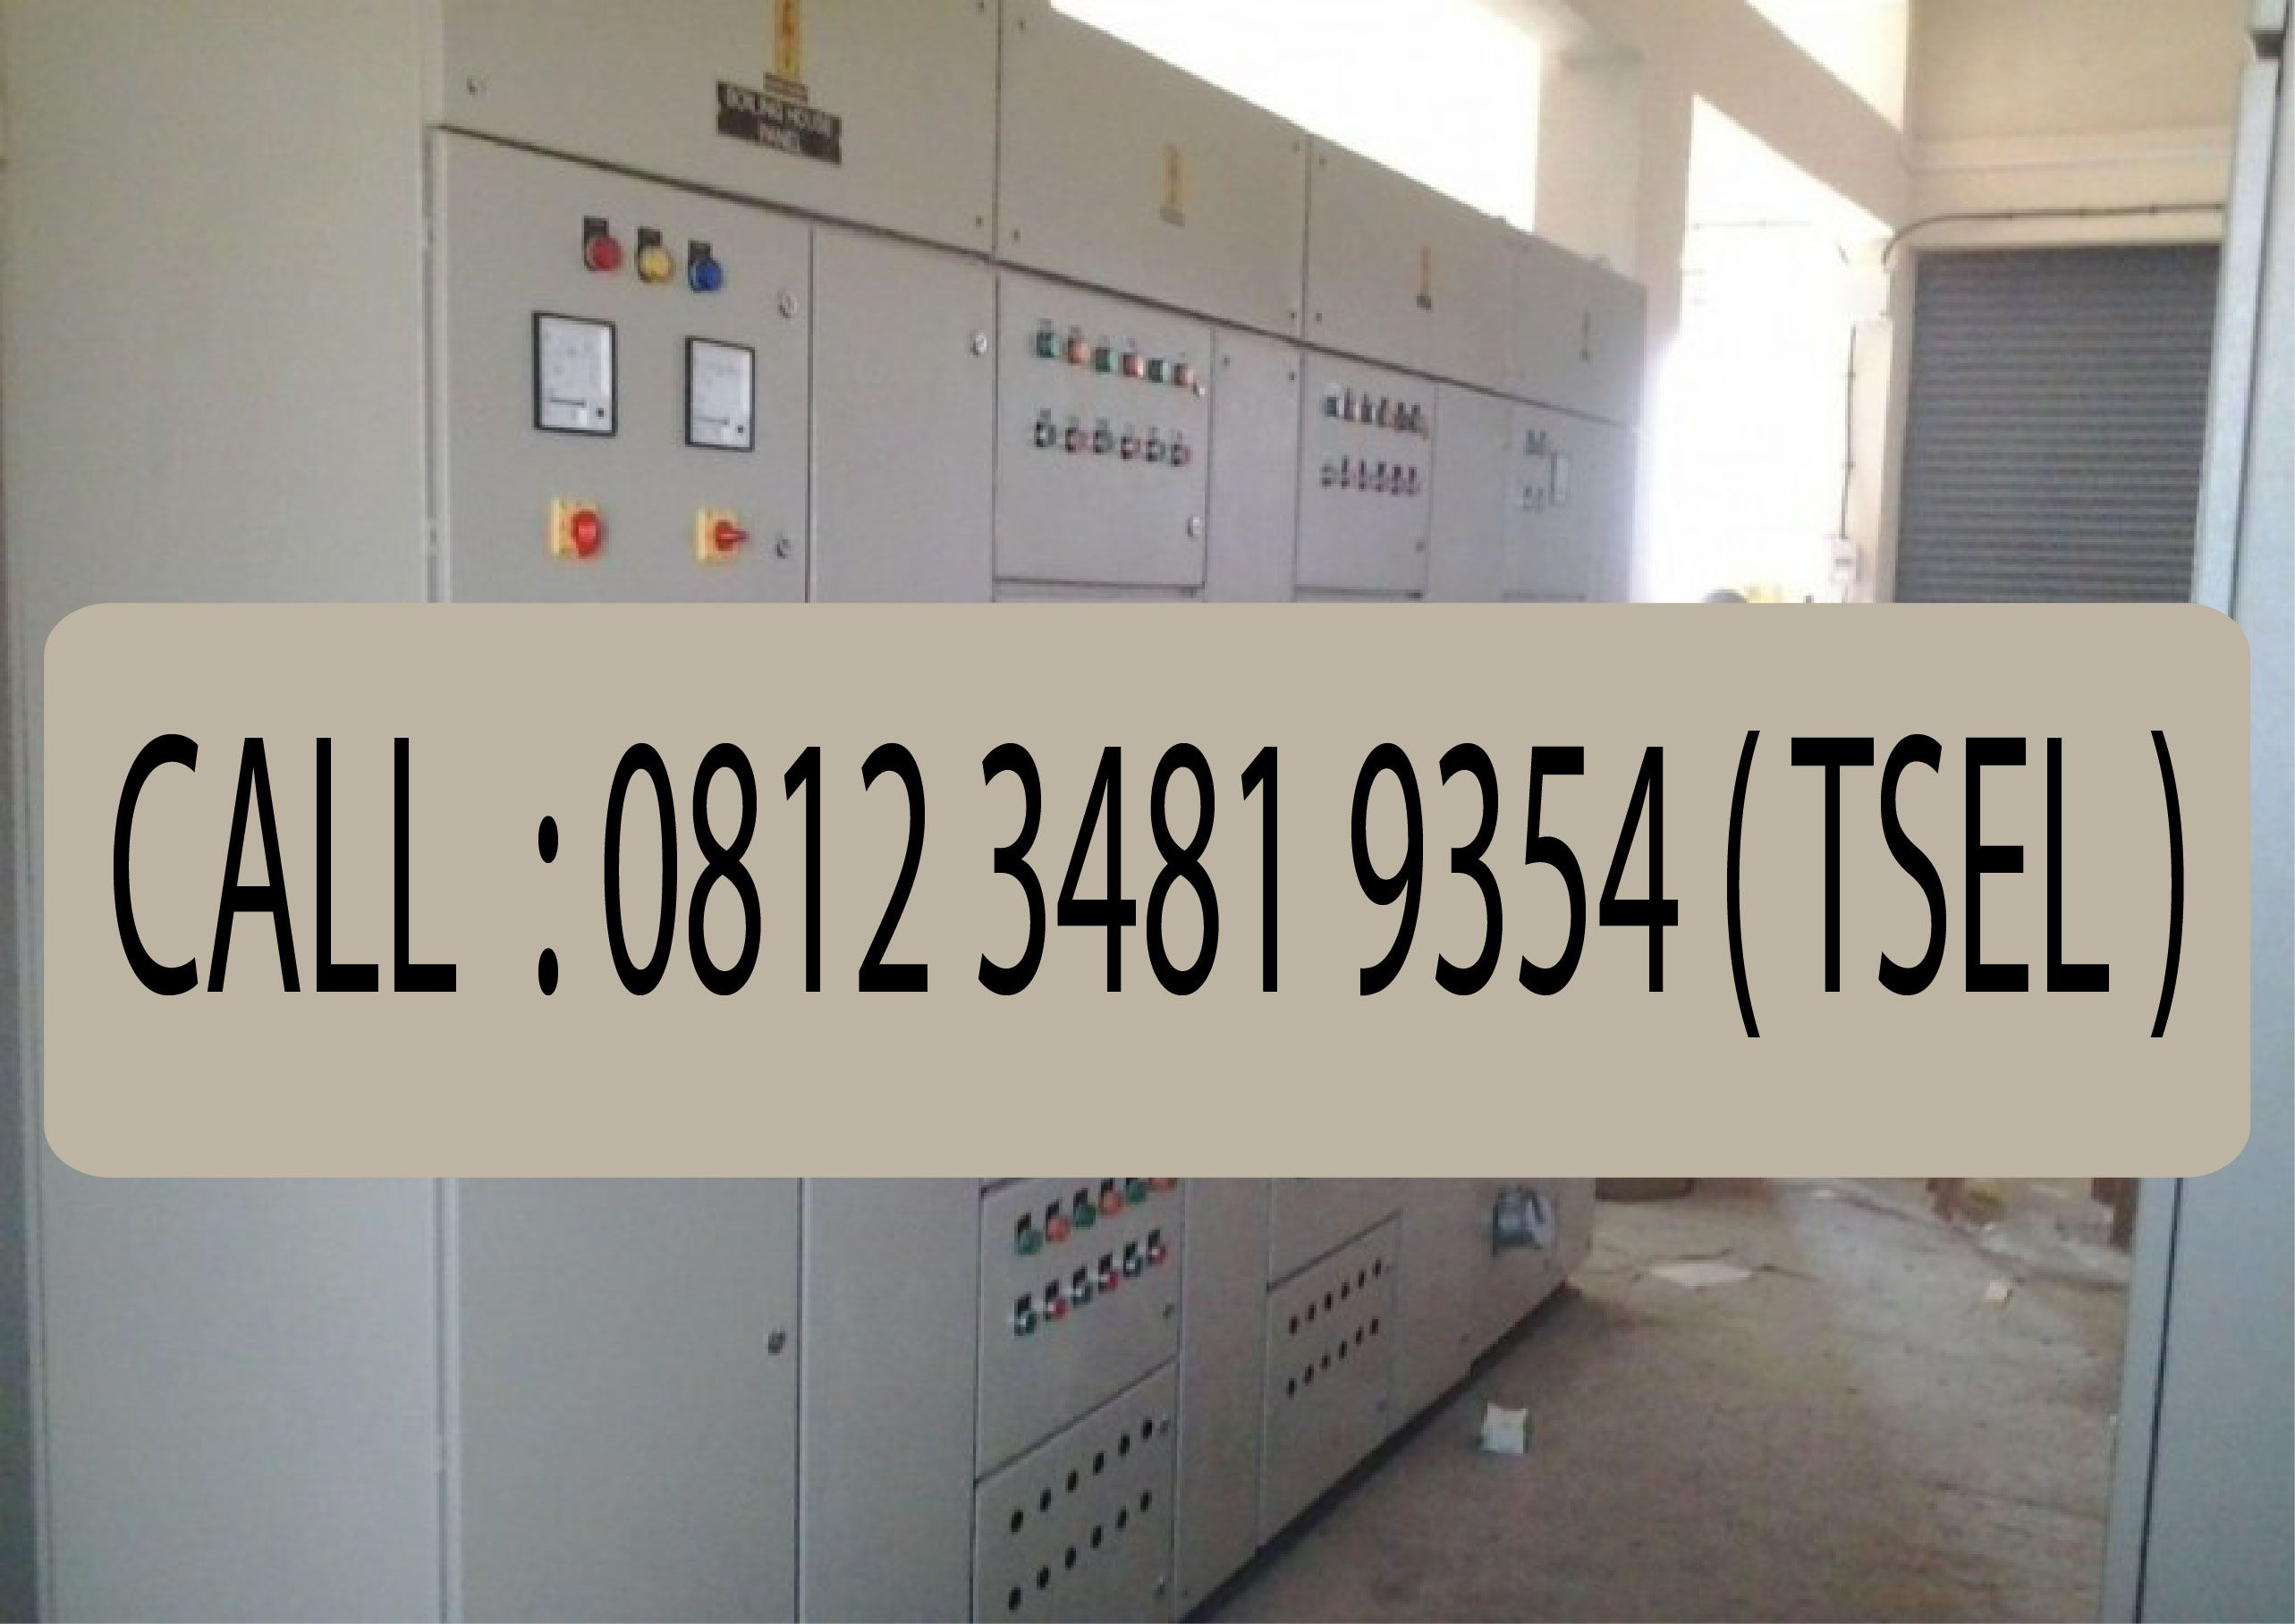 Electric Panel Board Manufacturers,Electric Panel Board Maker ... on electric battery manufacturers, solar panel manufacturers, gas fireplace manufacturers, tankless water heater manufacturers, wood panel manufacturers, steel panel manufacturers, tv panel manufacturers, electric cable manufacturers, fire panel manufacturers, electric fan manufacturers,